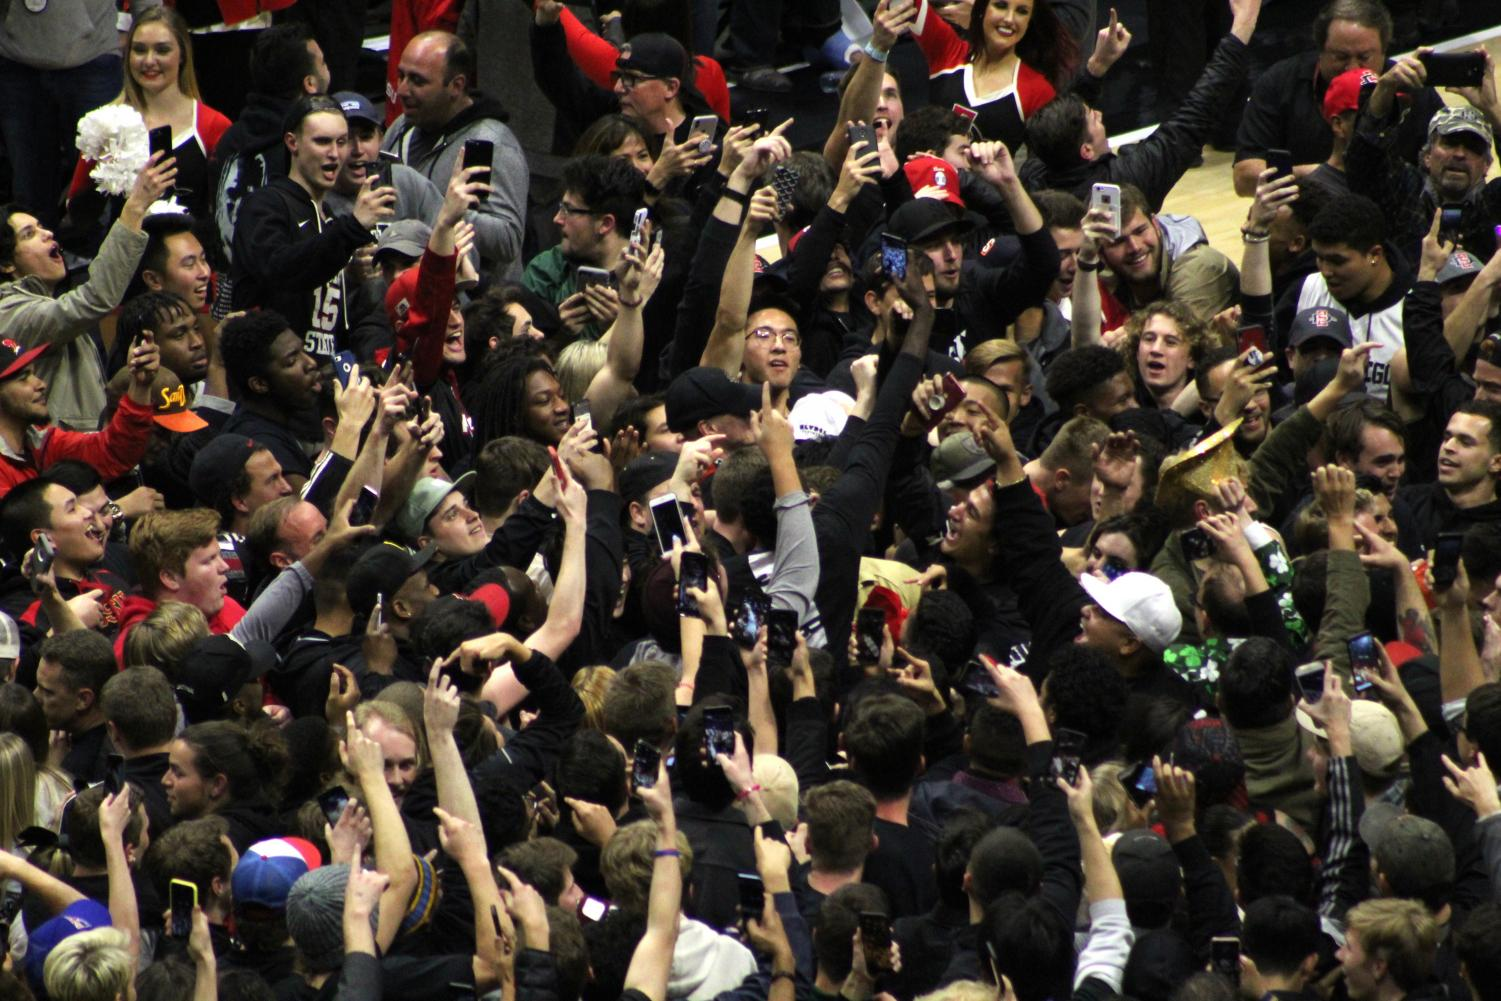 Fans stormed the court following the Aztecs 65-57 victory over No. 6 Nevada on Feb. 20 at Viejas Arena.